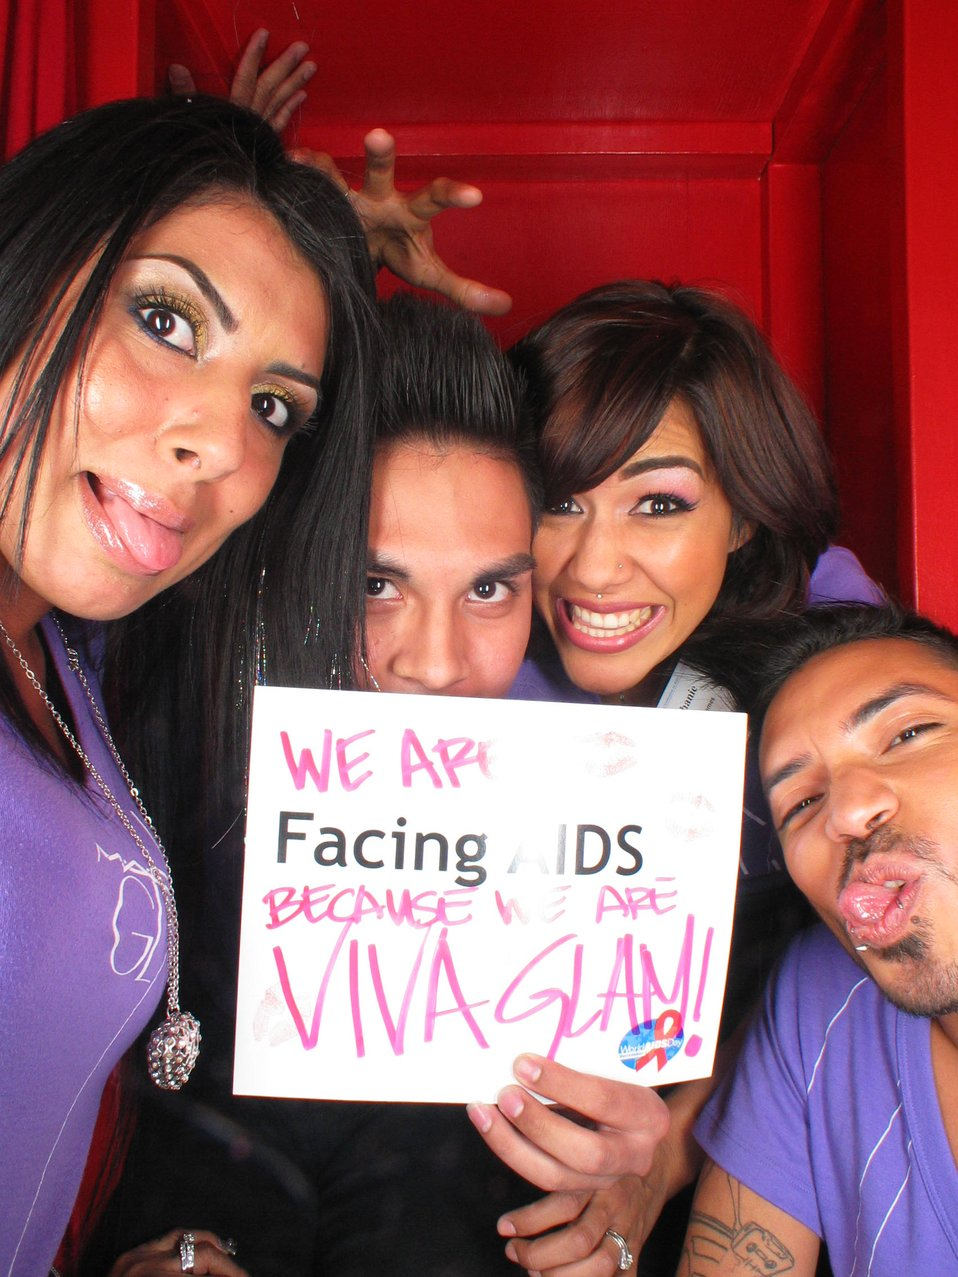 We are Facing AIDS because we are VIVA GLAM!